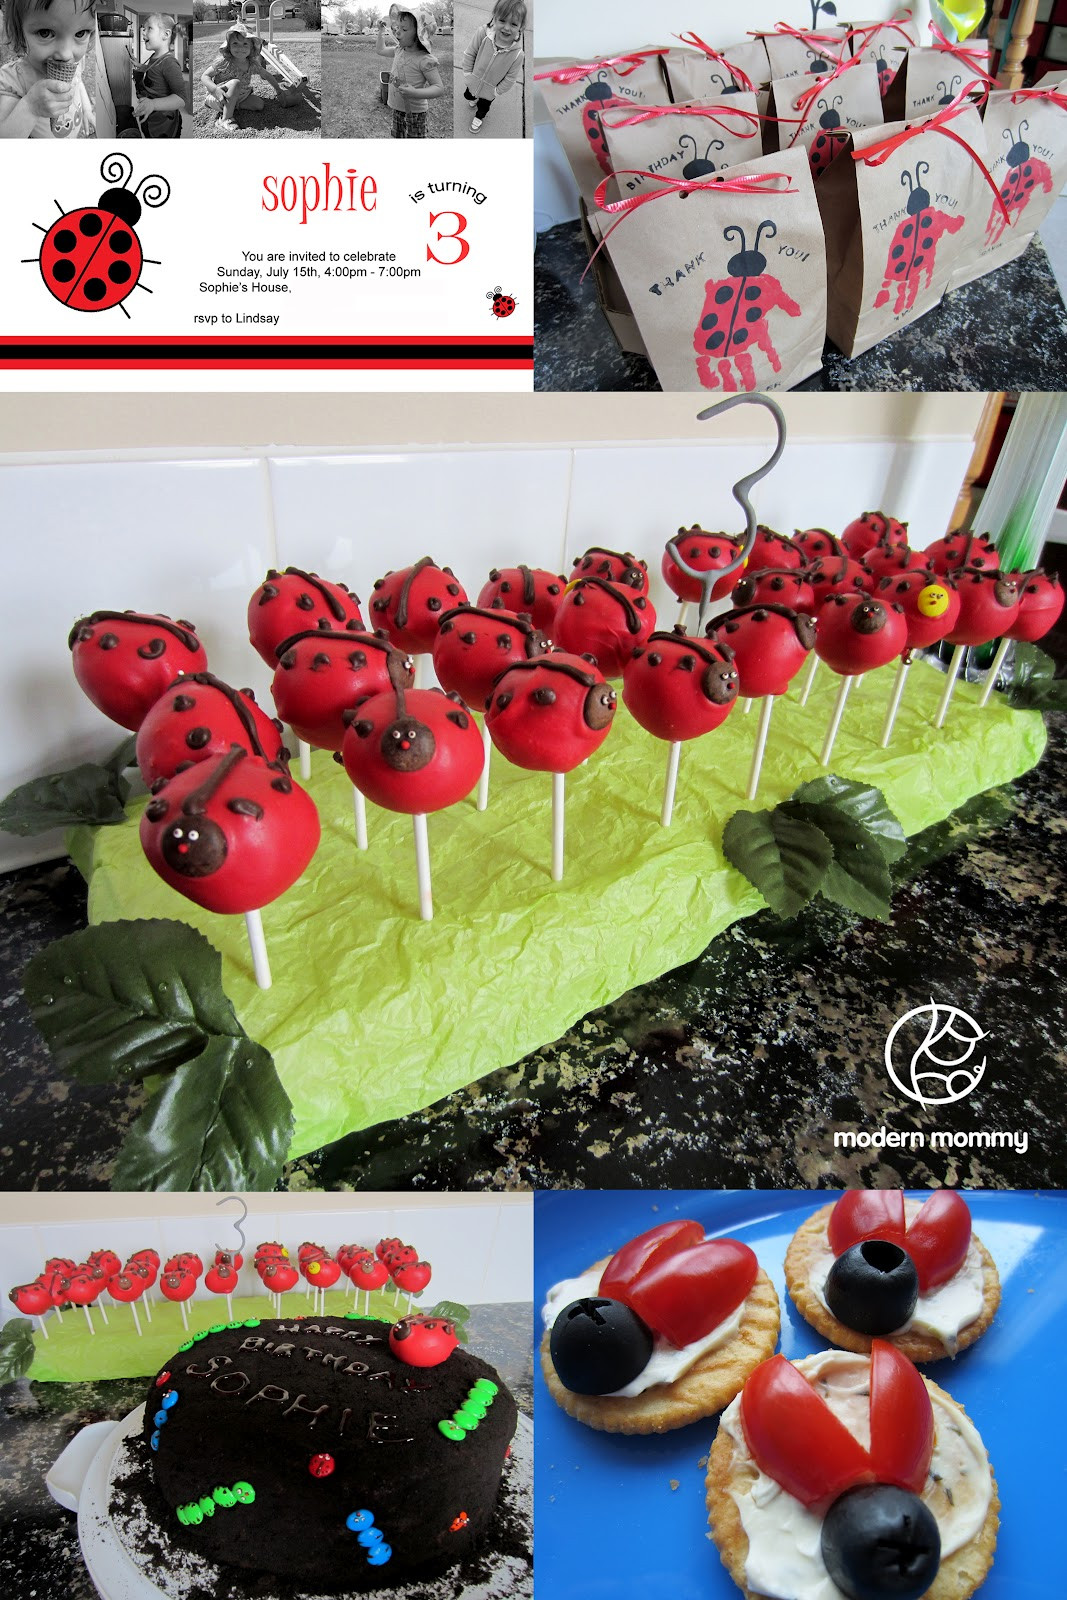 Best ideas about Ladybug Birthday Party . Save or Pin Modern Mommy A Ladybug Birthday Party Now.